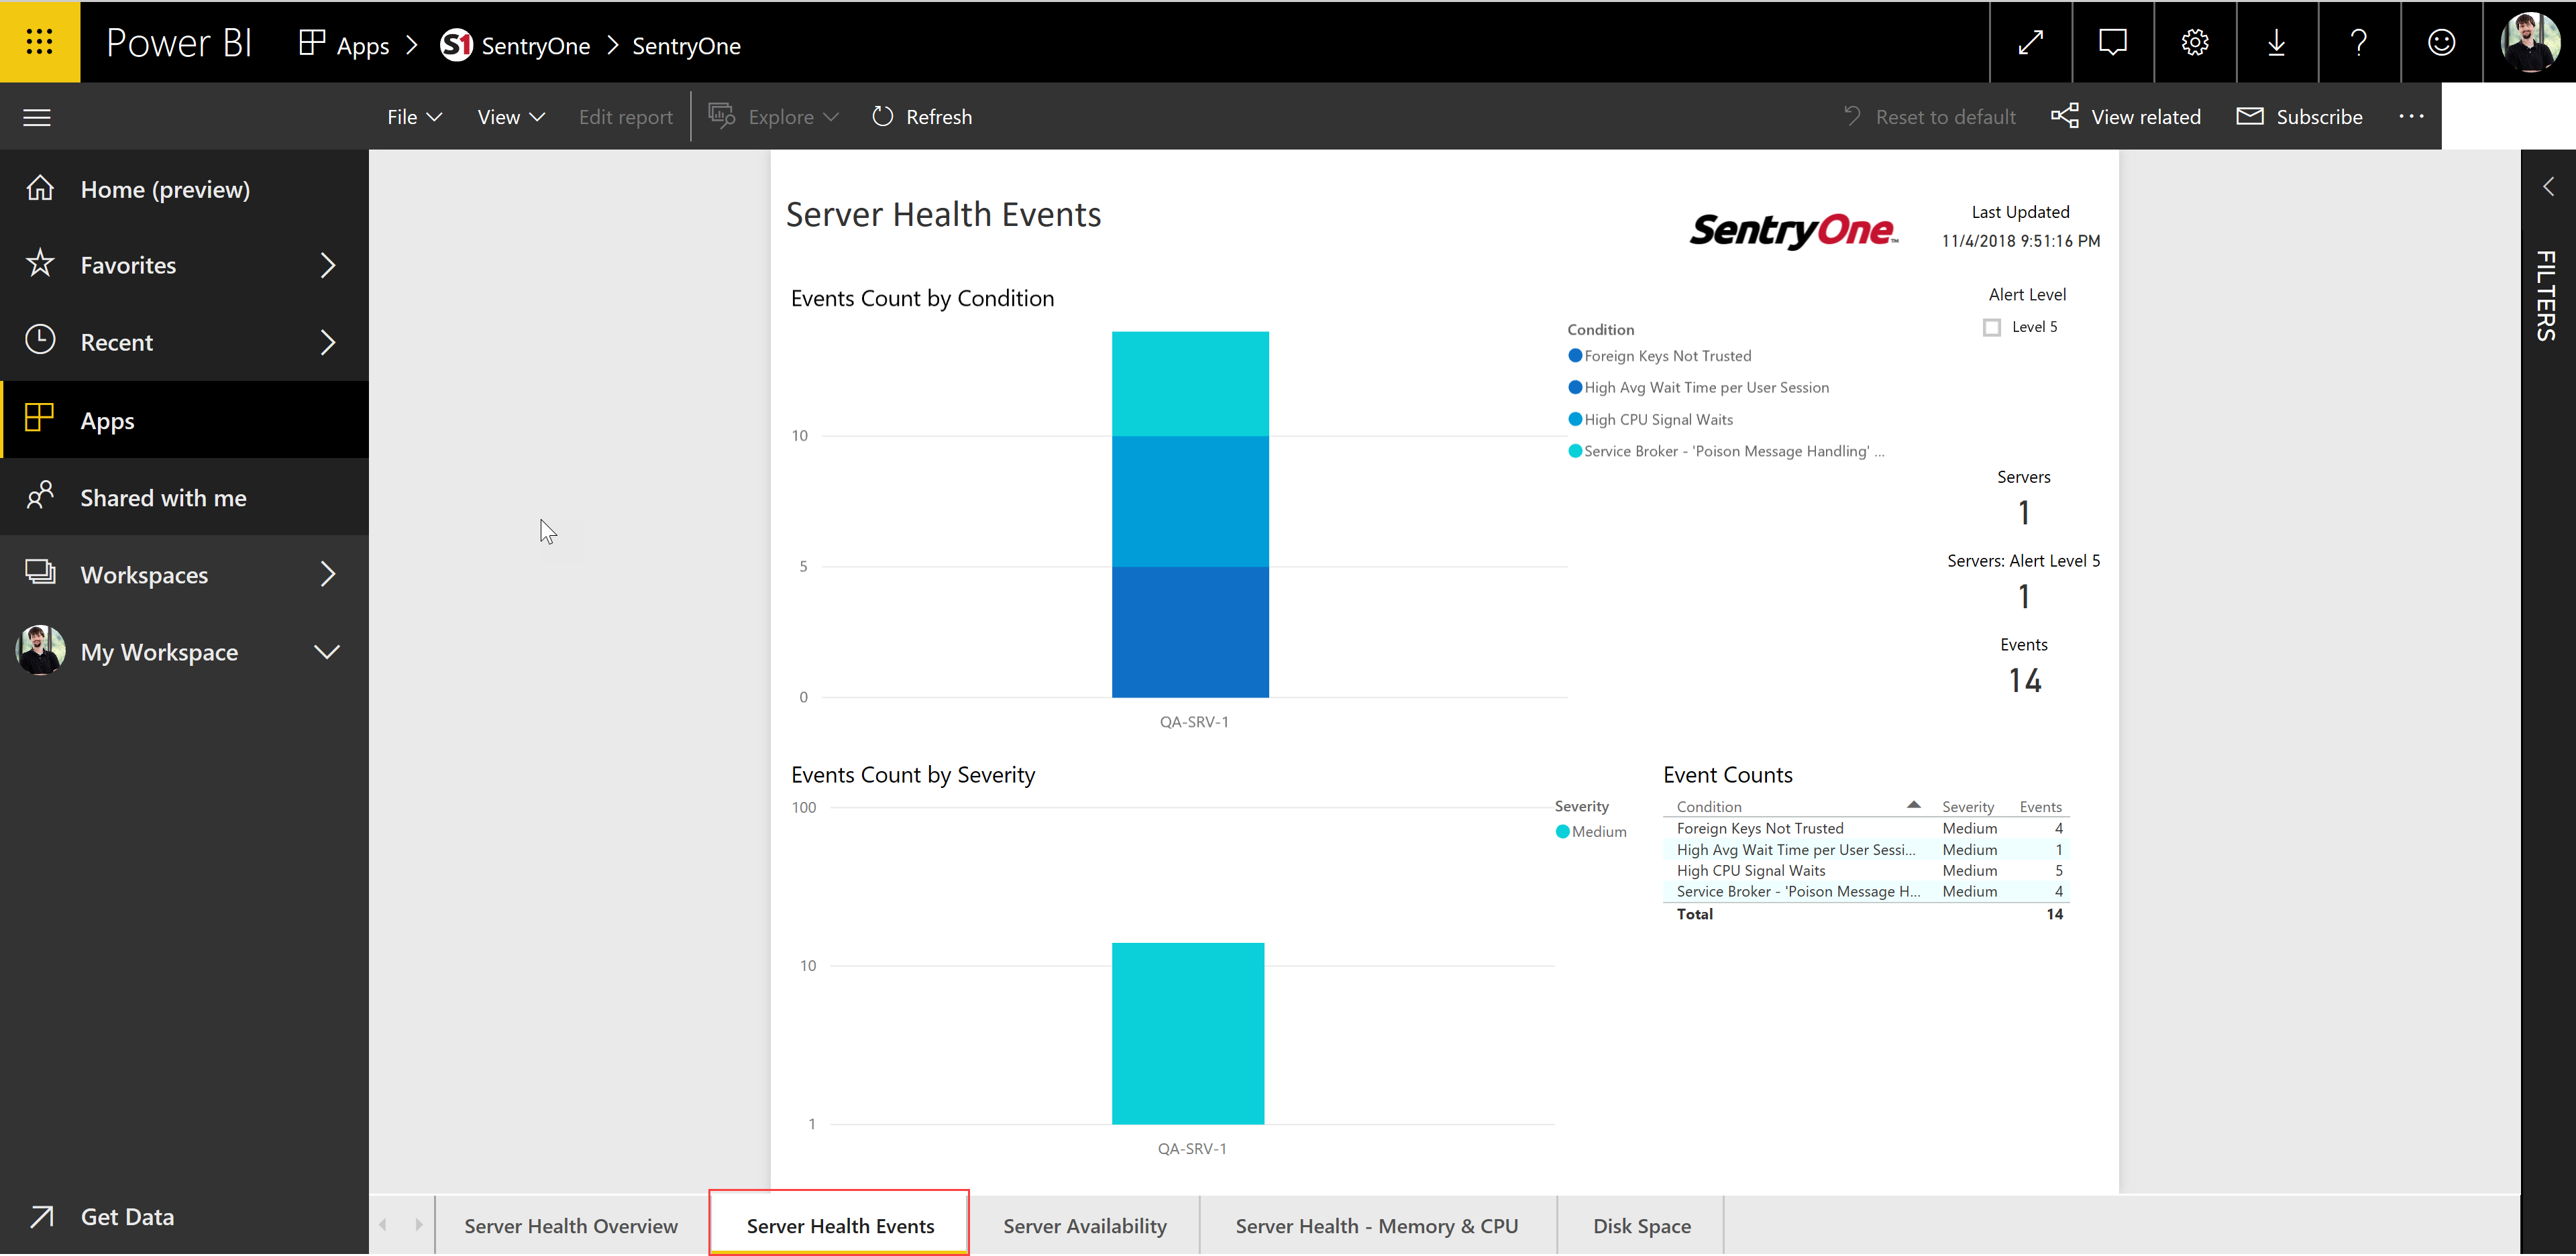 SentryOne Power BI app Server Health Events